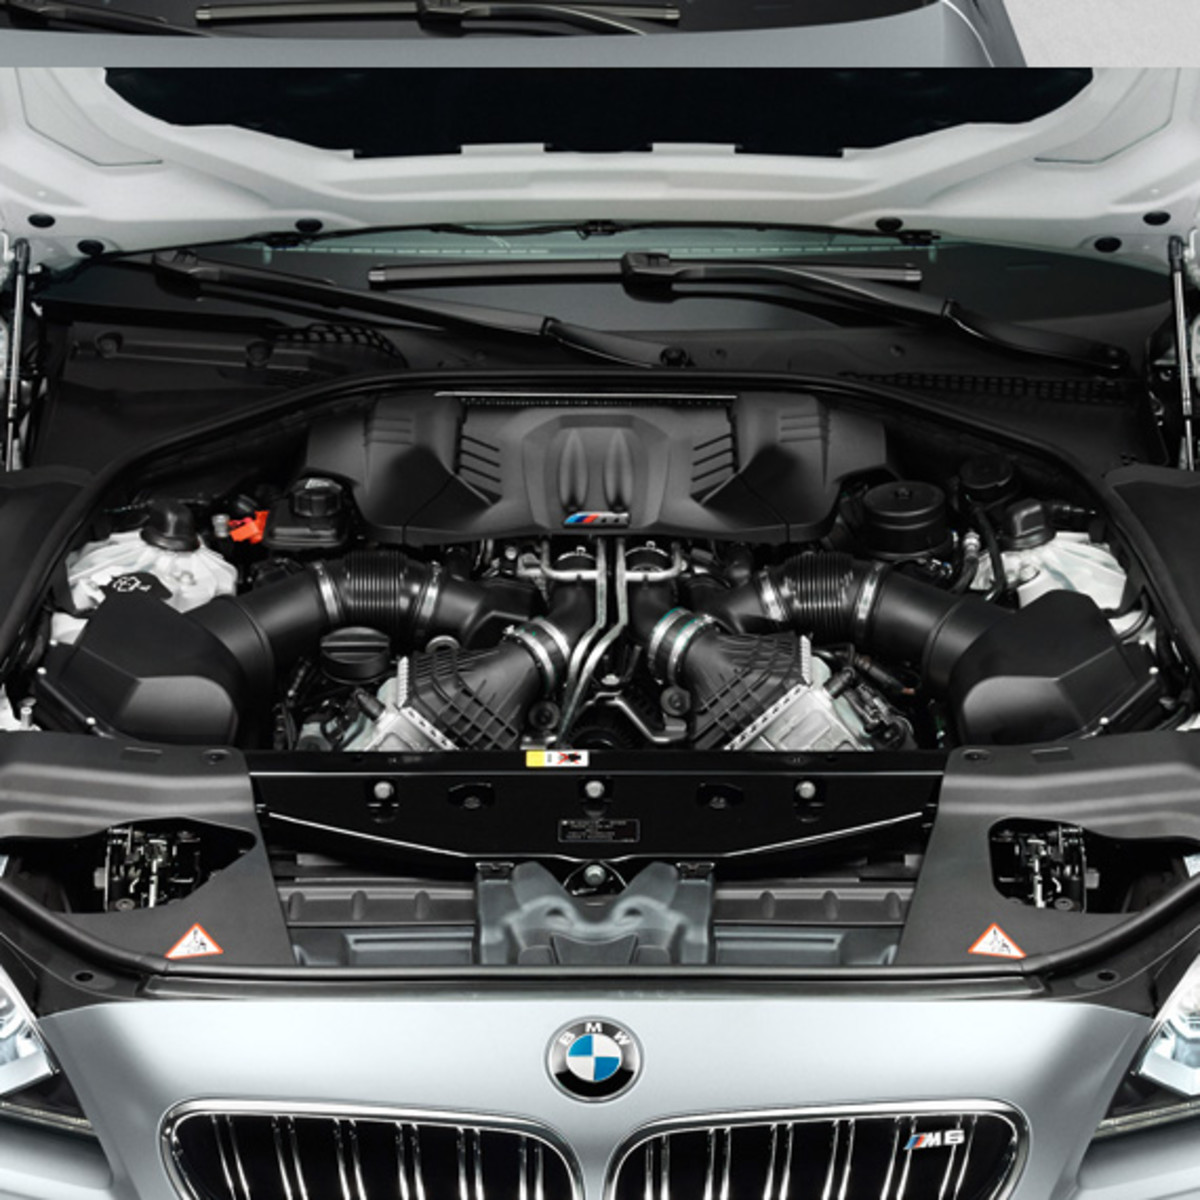 2014 bmw m6 gran coupe v8 with m twinpower turbo - Bmw m6 gran coupe interior ...